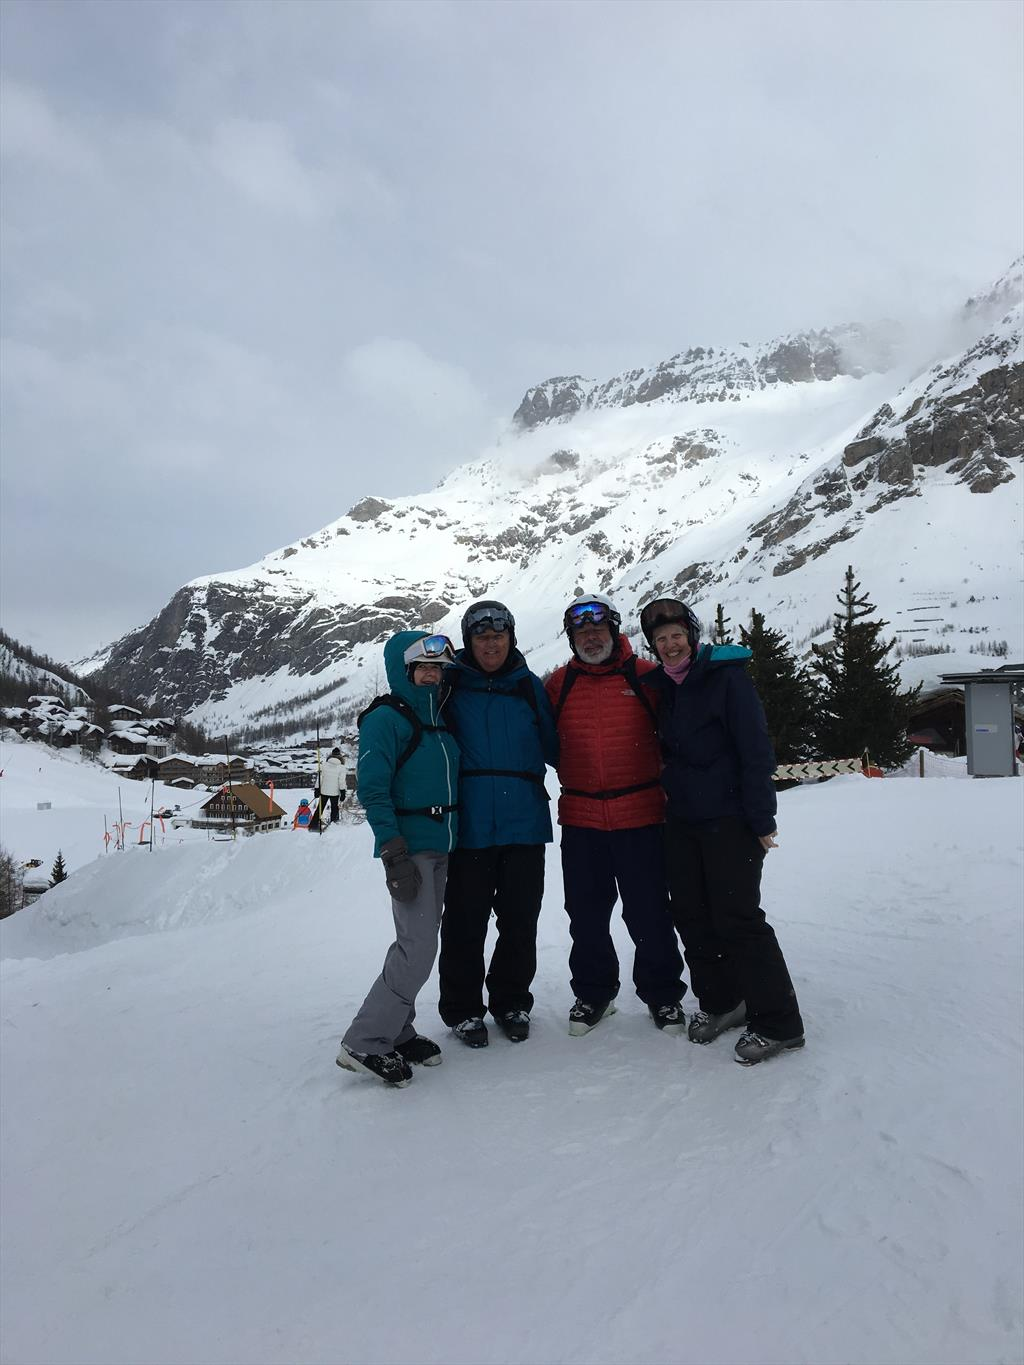 Four area New England Law grads meet up skiing in Alps